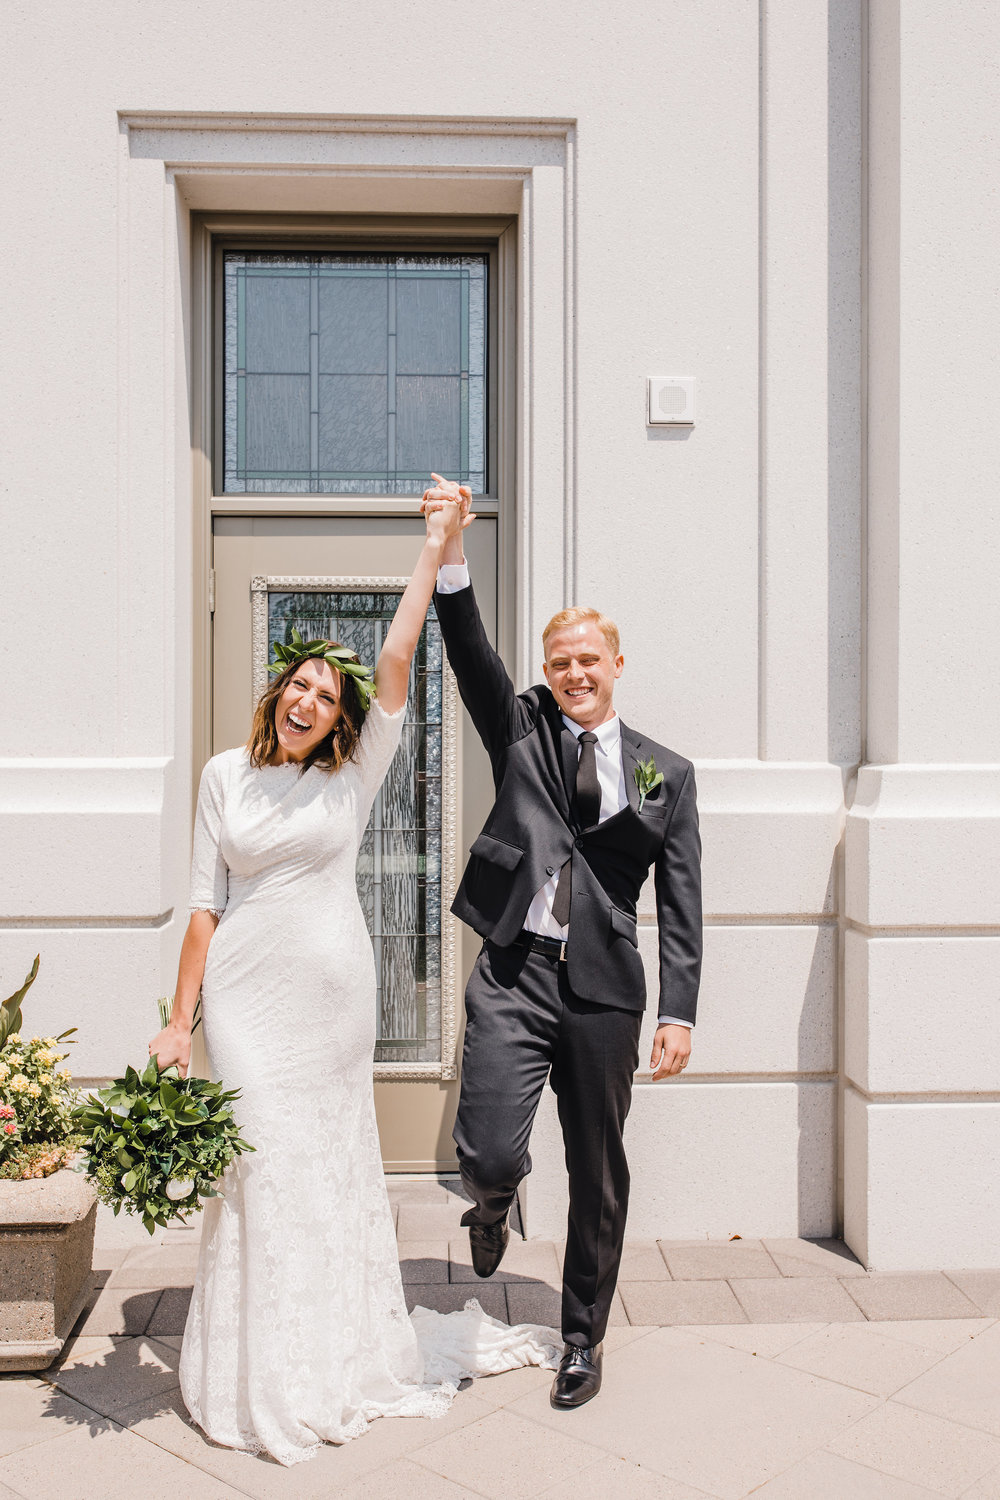 professional wedding photographer in brigham city utah temple exit lds holding hands cheering happy